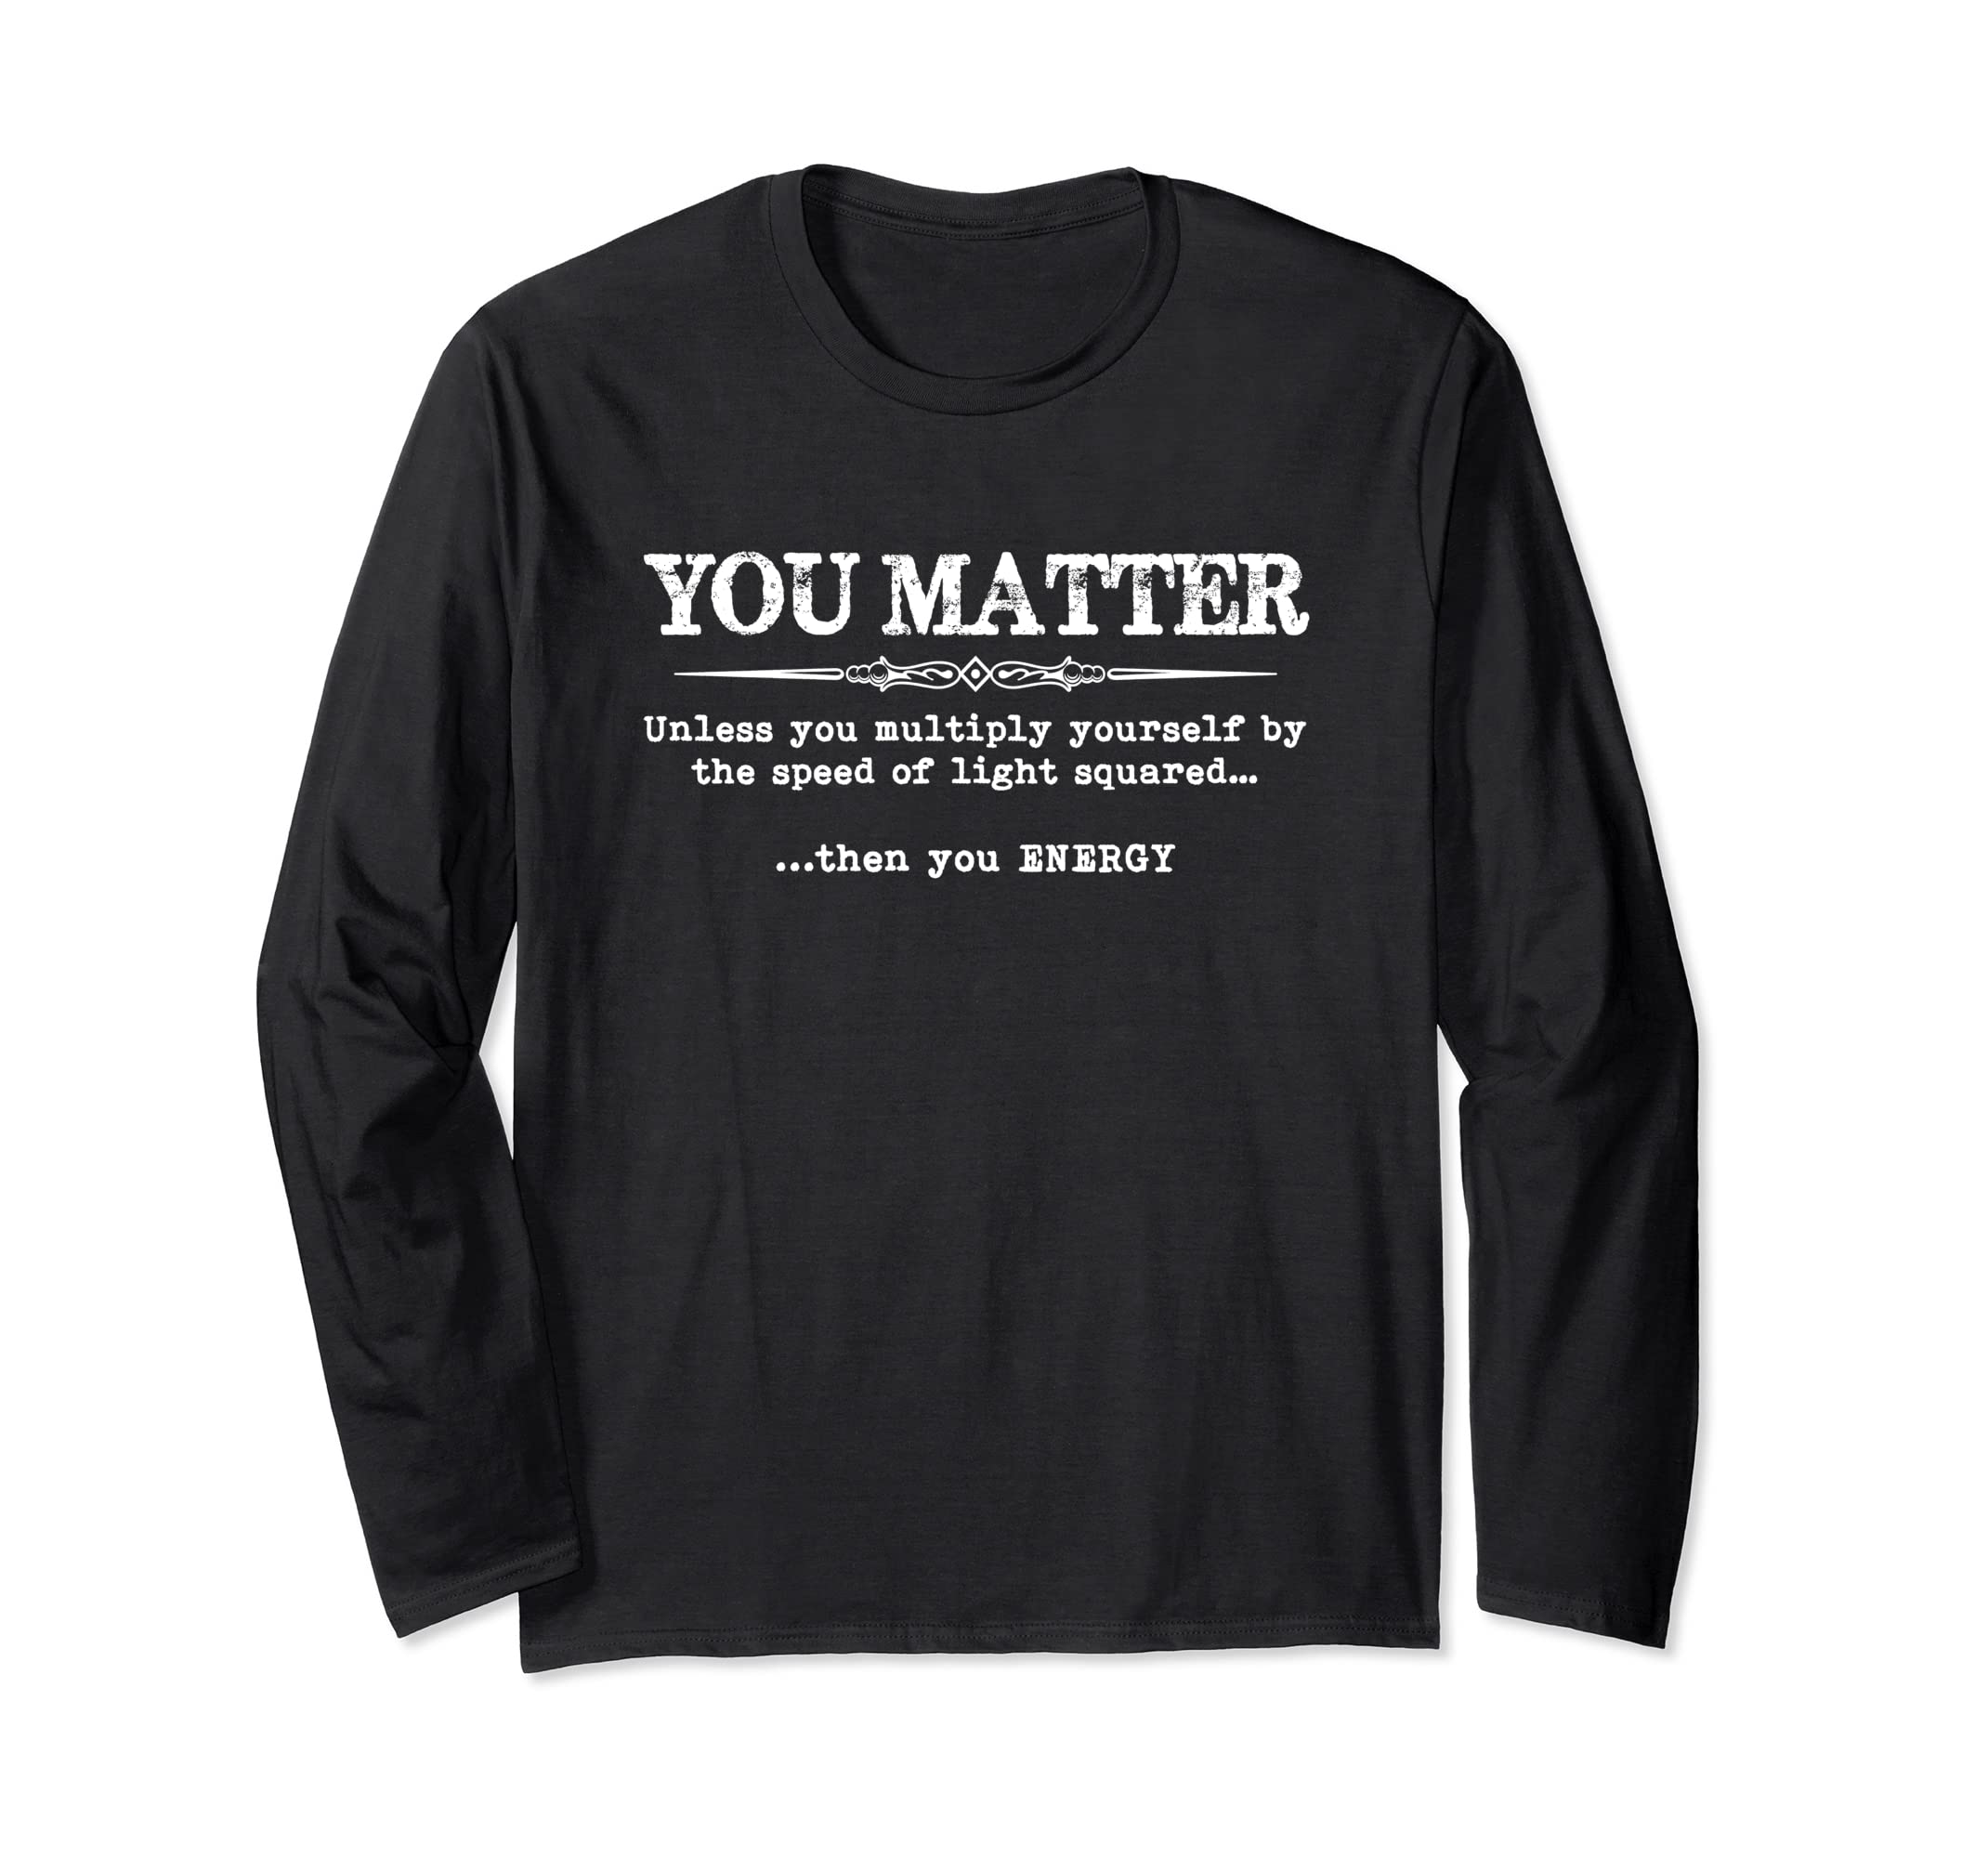 3d070a1e2 Amazon.com: You Matter Then You Energy T Shirt Long Sleeve Tee - Funny:  Clothing